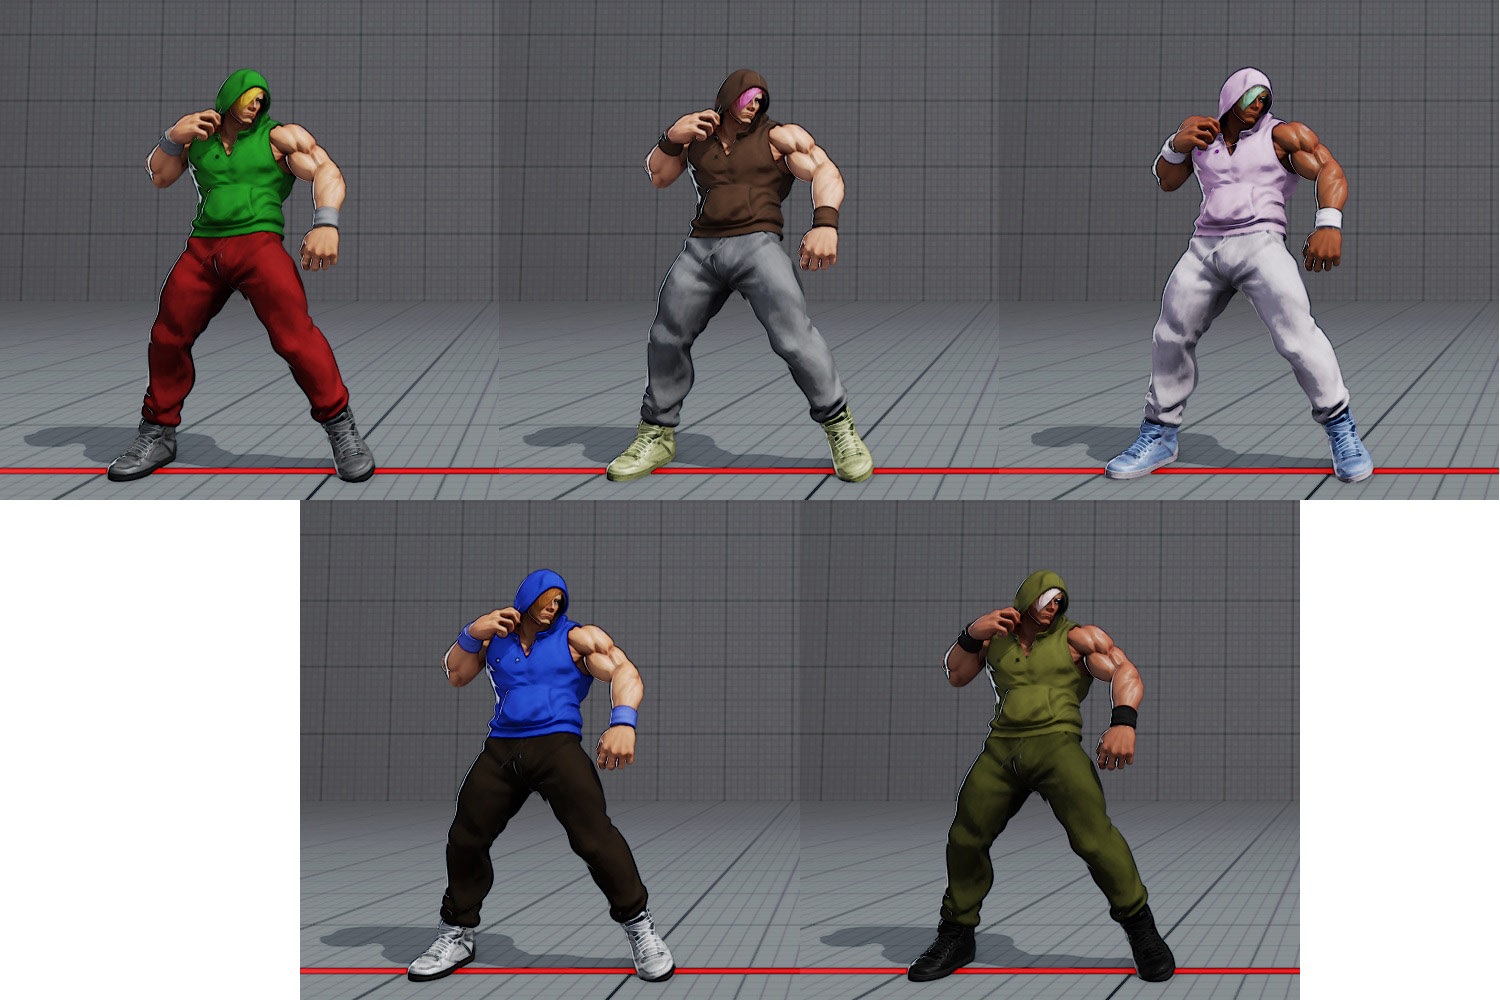 Ed's costumes and colors in Street Fighter 5 4 out of 6 image gallery